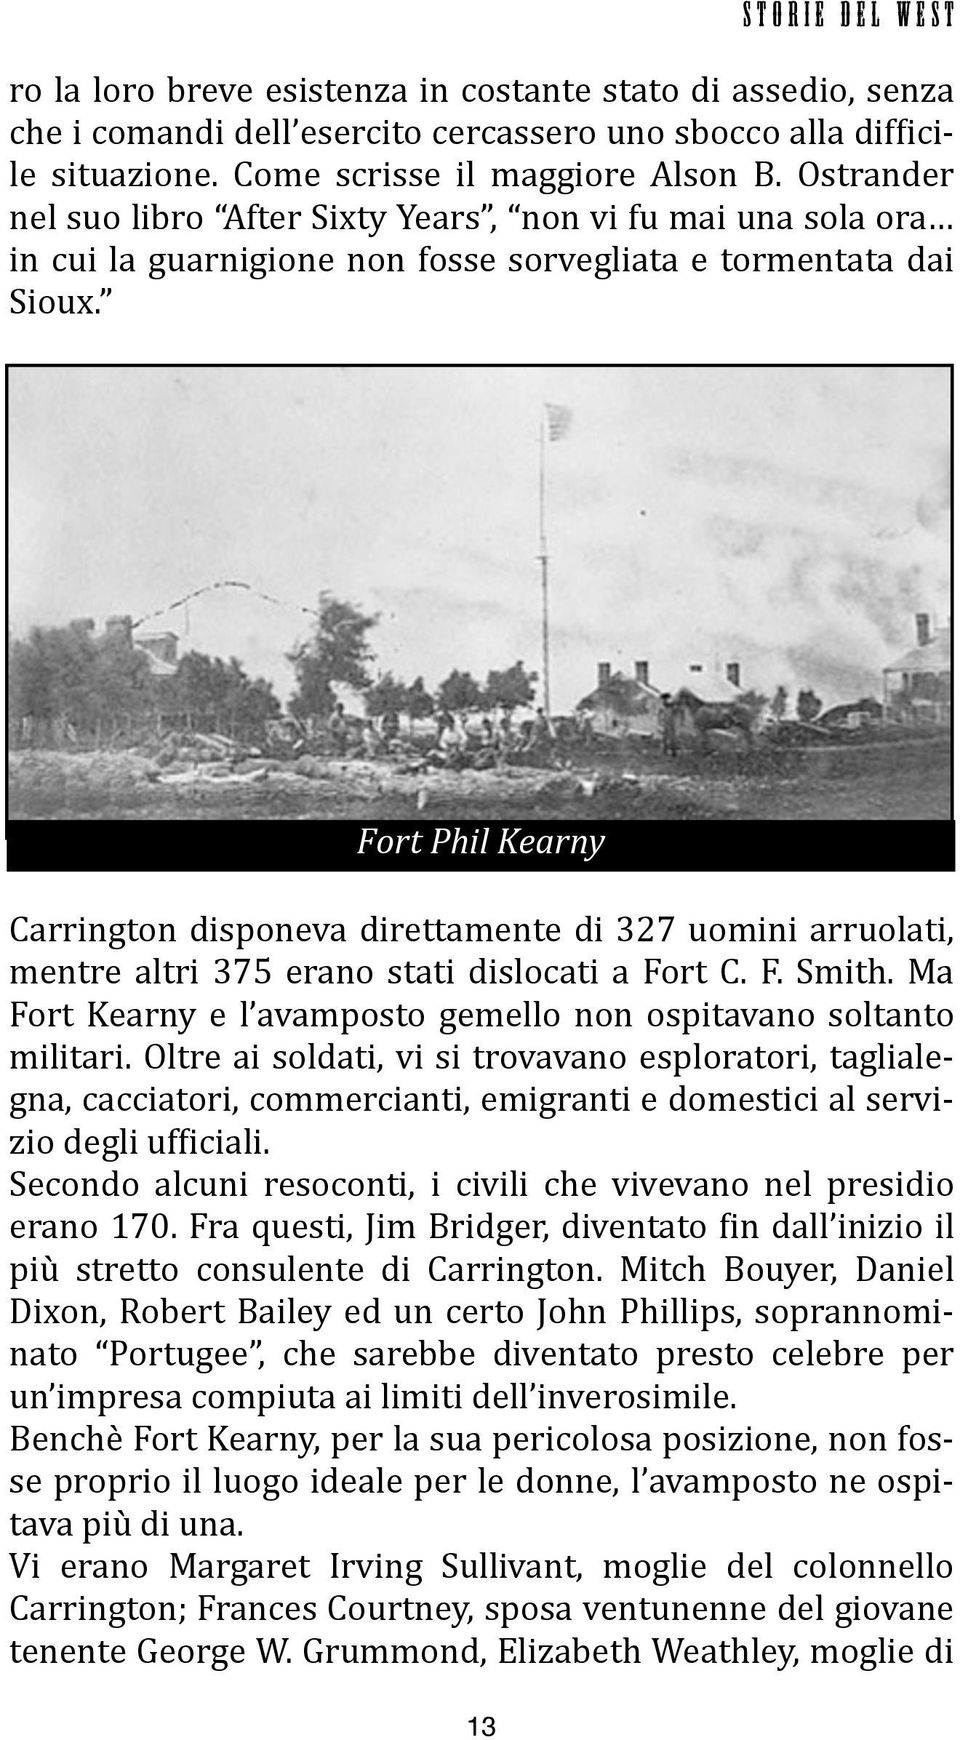 Fort Phil Kearny Carrington disponeva direttamente di 327 uomini arruolati, mentre altri 375 erano stati dislocati a Fort C. F. Smith.